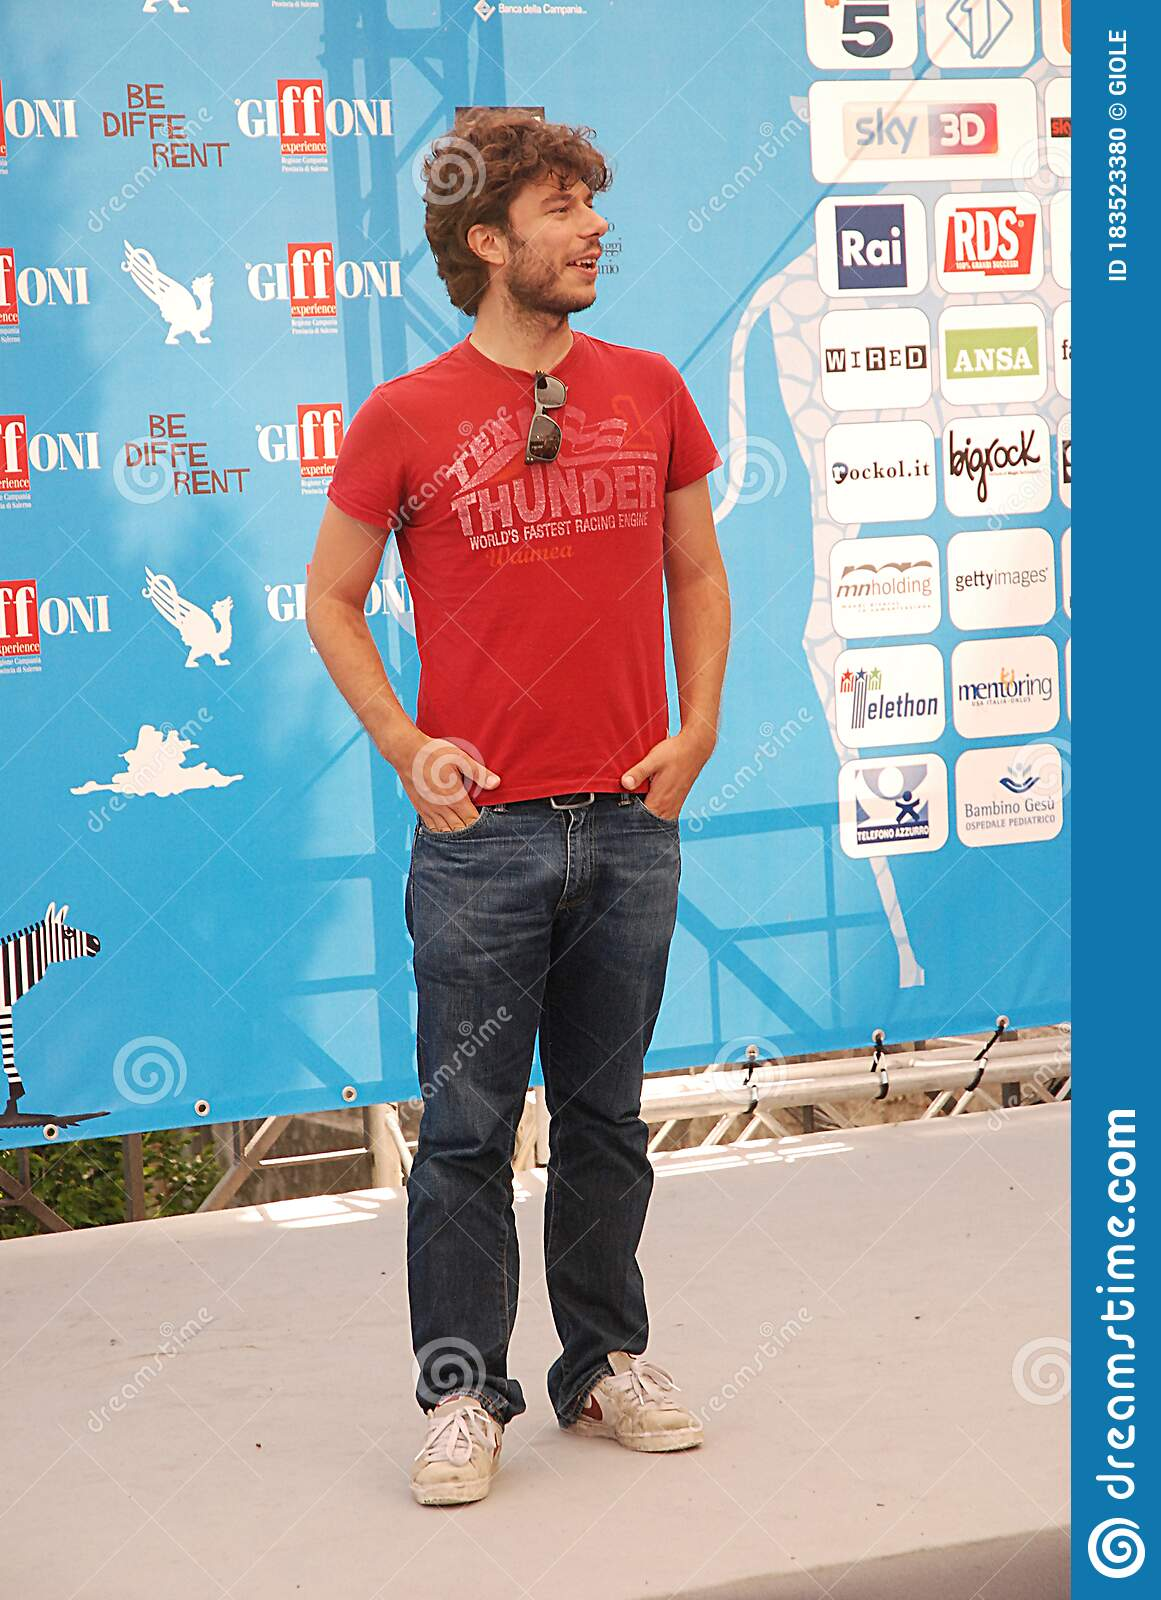 Sydney Sibilia At Giffoni Film Festival 2014. Editorial Image - Image of  giffonifilmfestival2014, event: 183523380